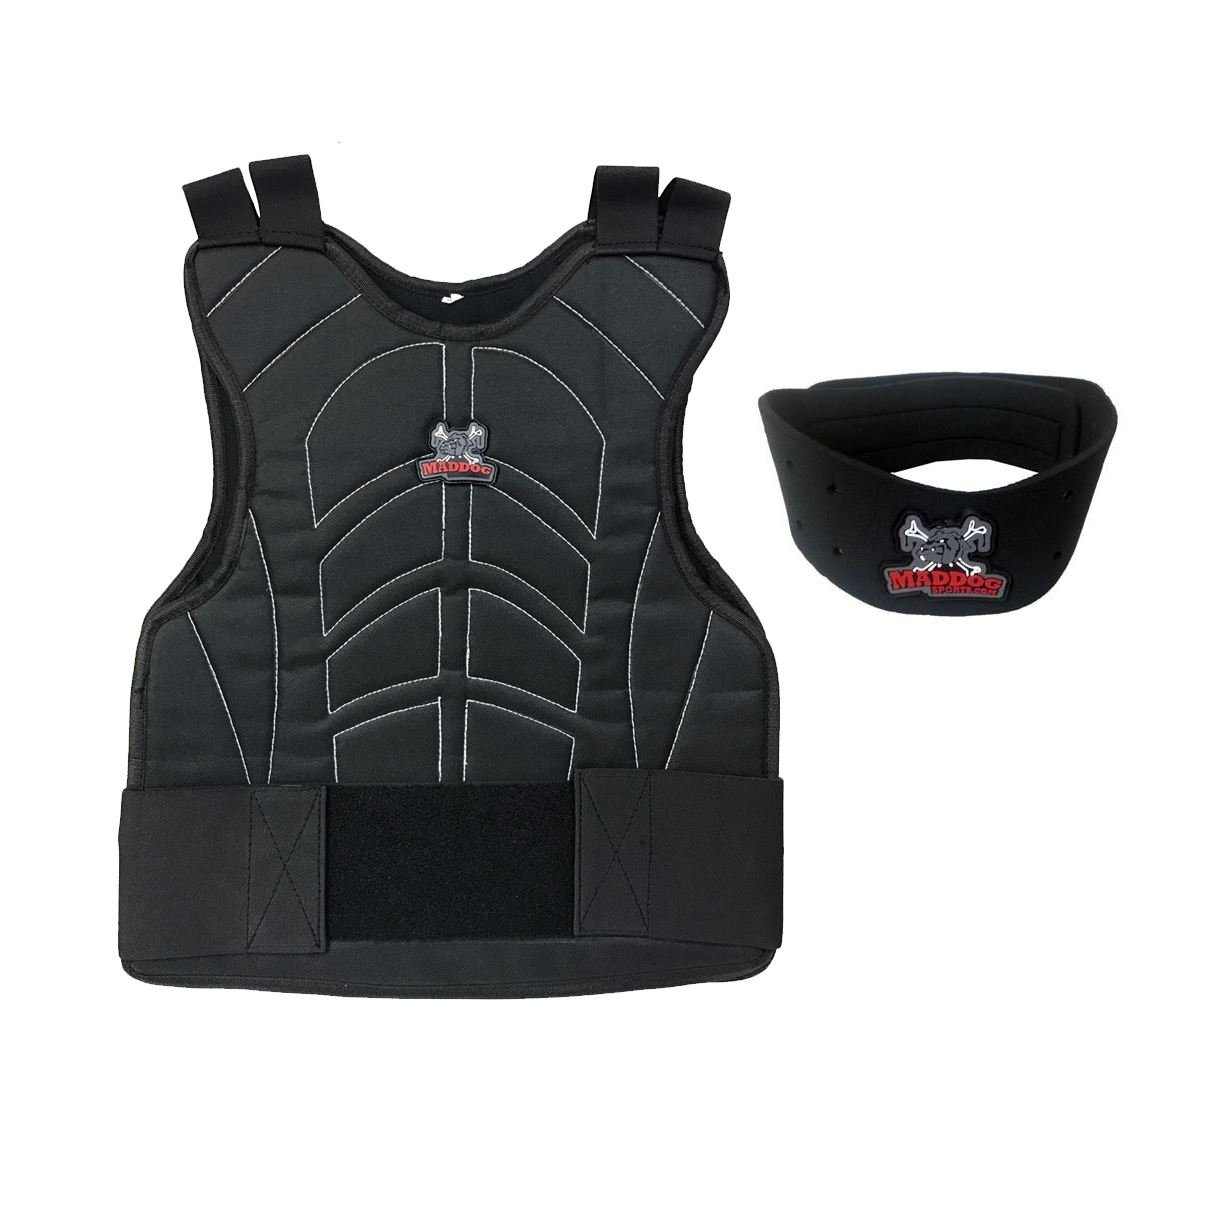 MAddog Sports Padded Chest Protector with Neck Protector Safety Combo - Black by MAddog